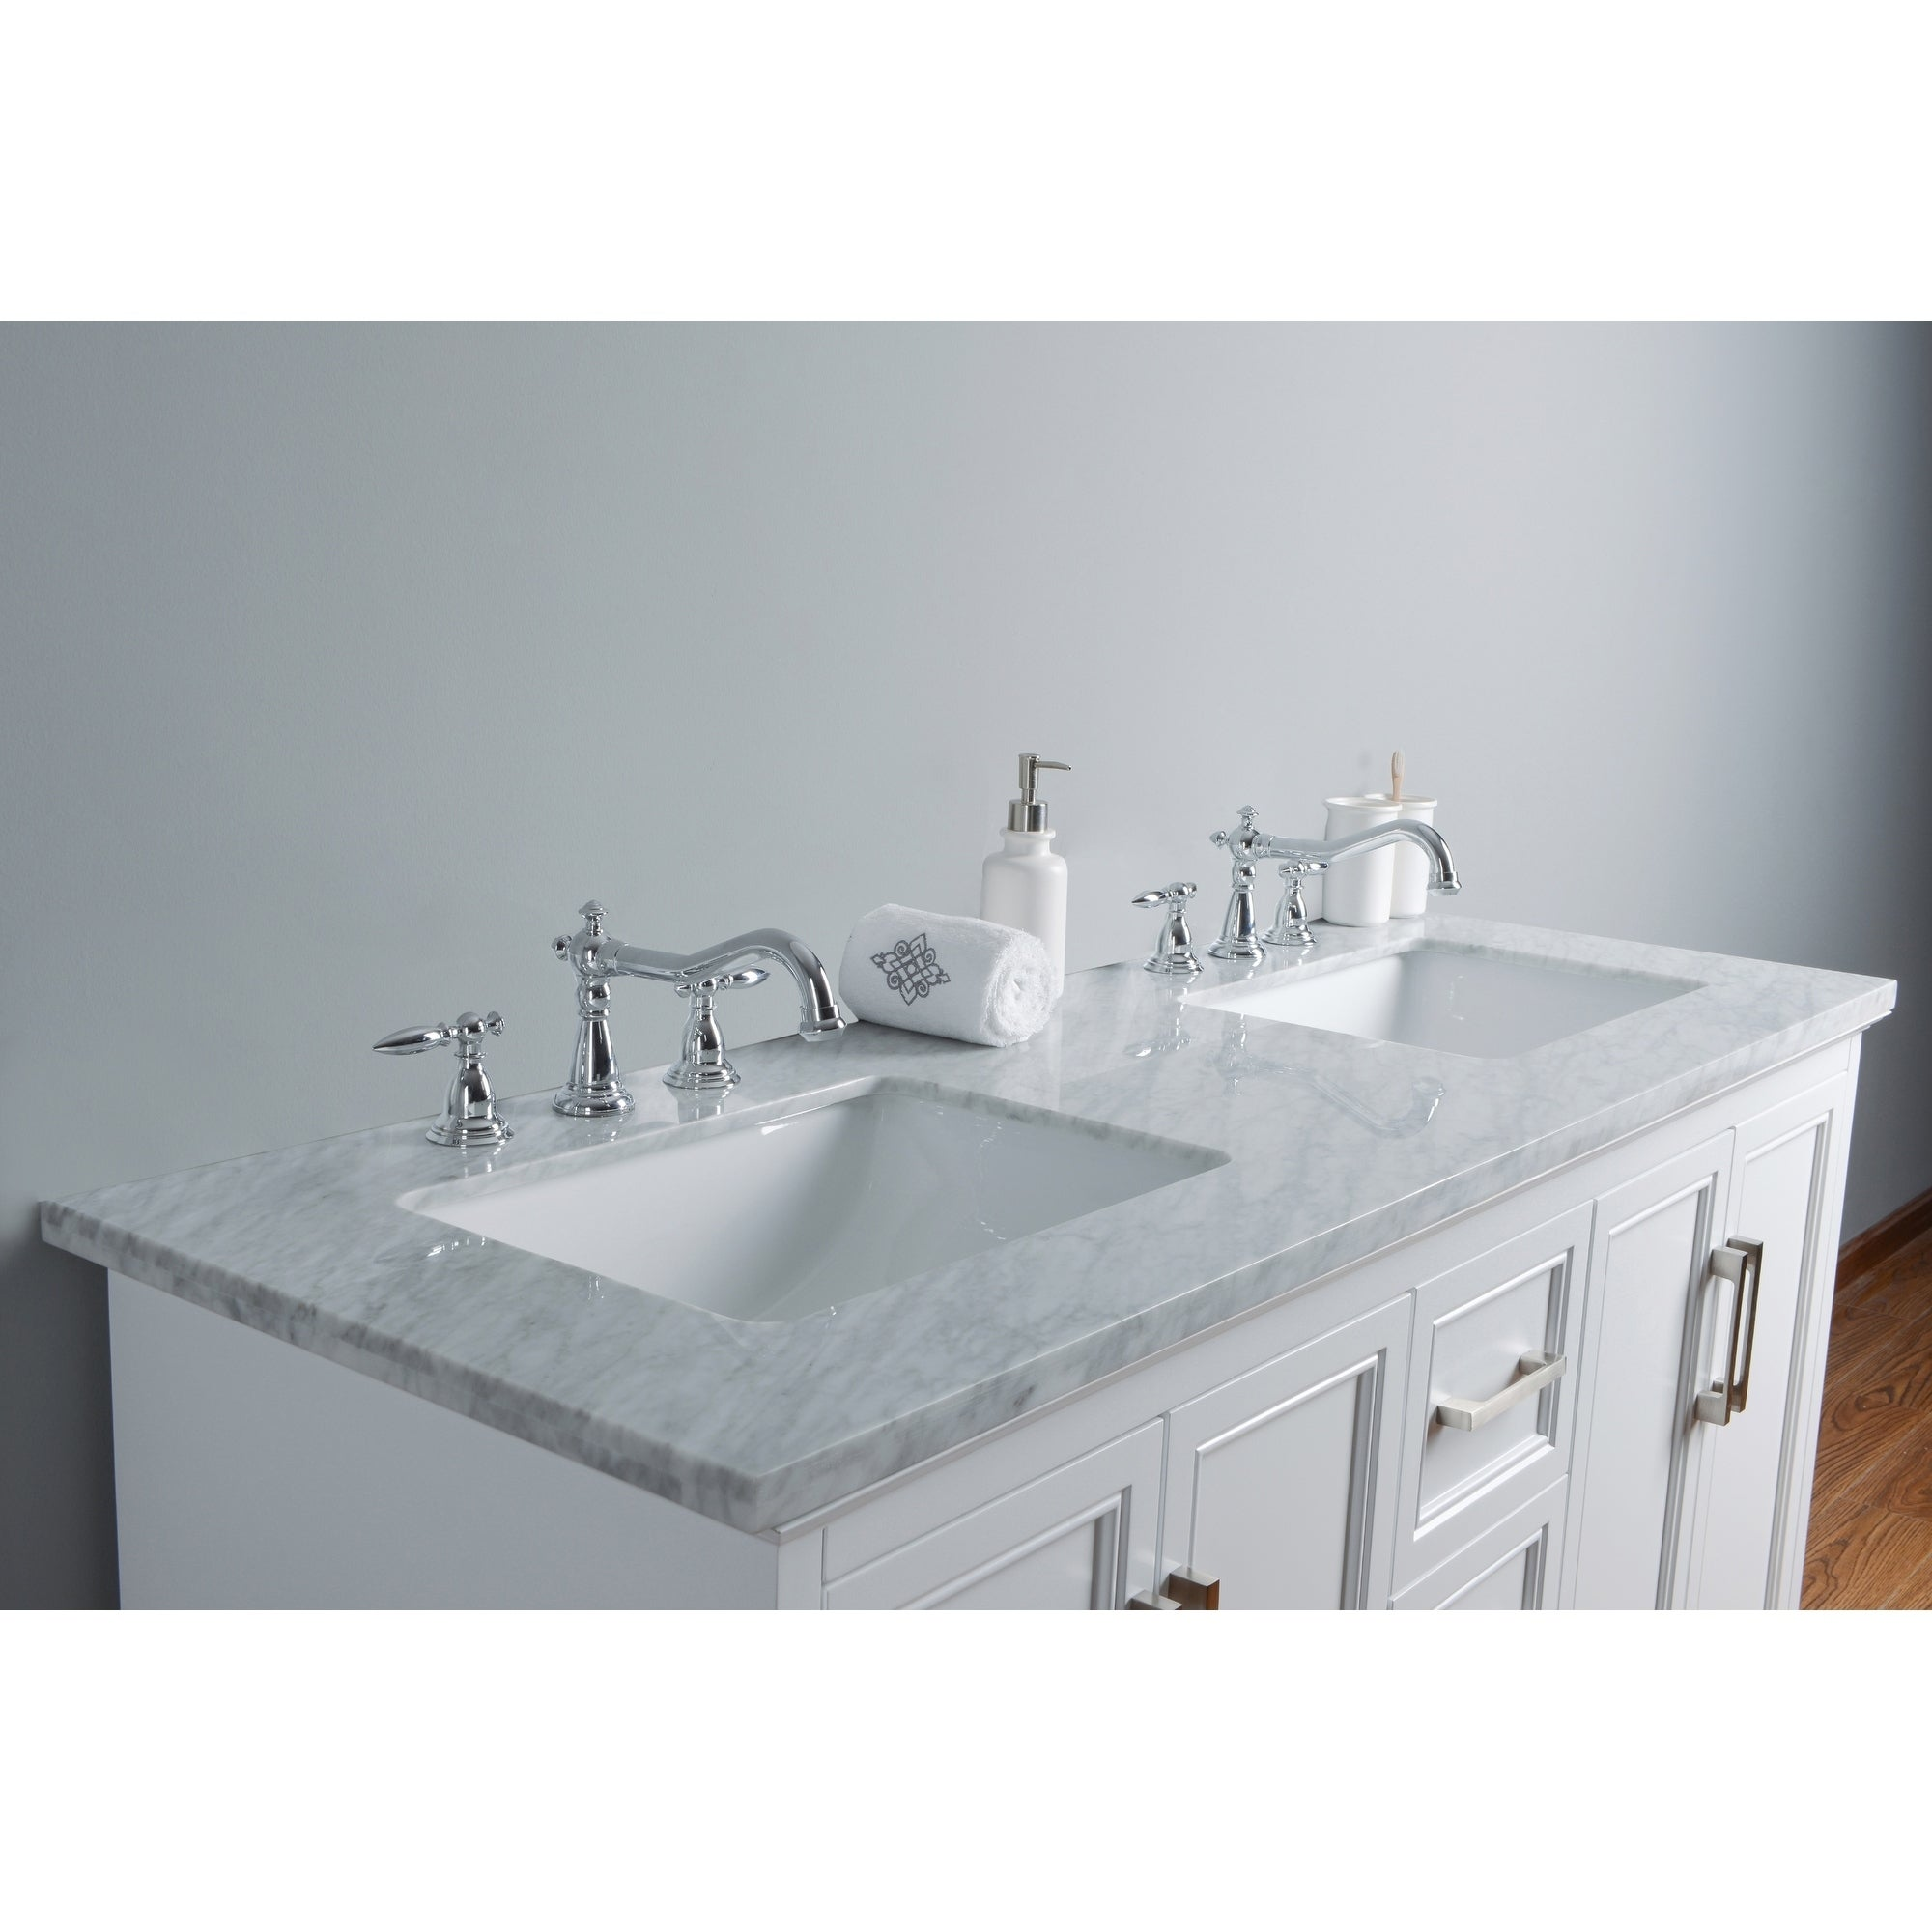 Stufurhome Ariane 60 in. White Double Sink Bathroom Vanity | eBay